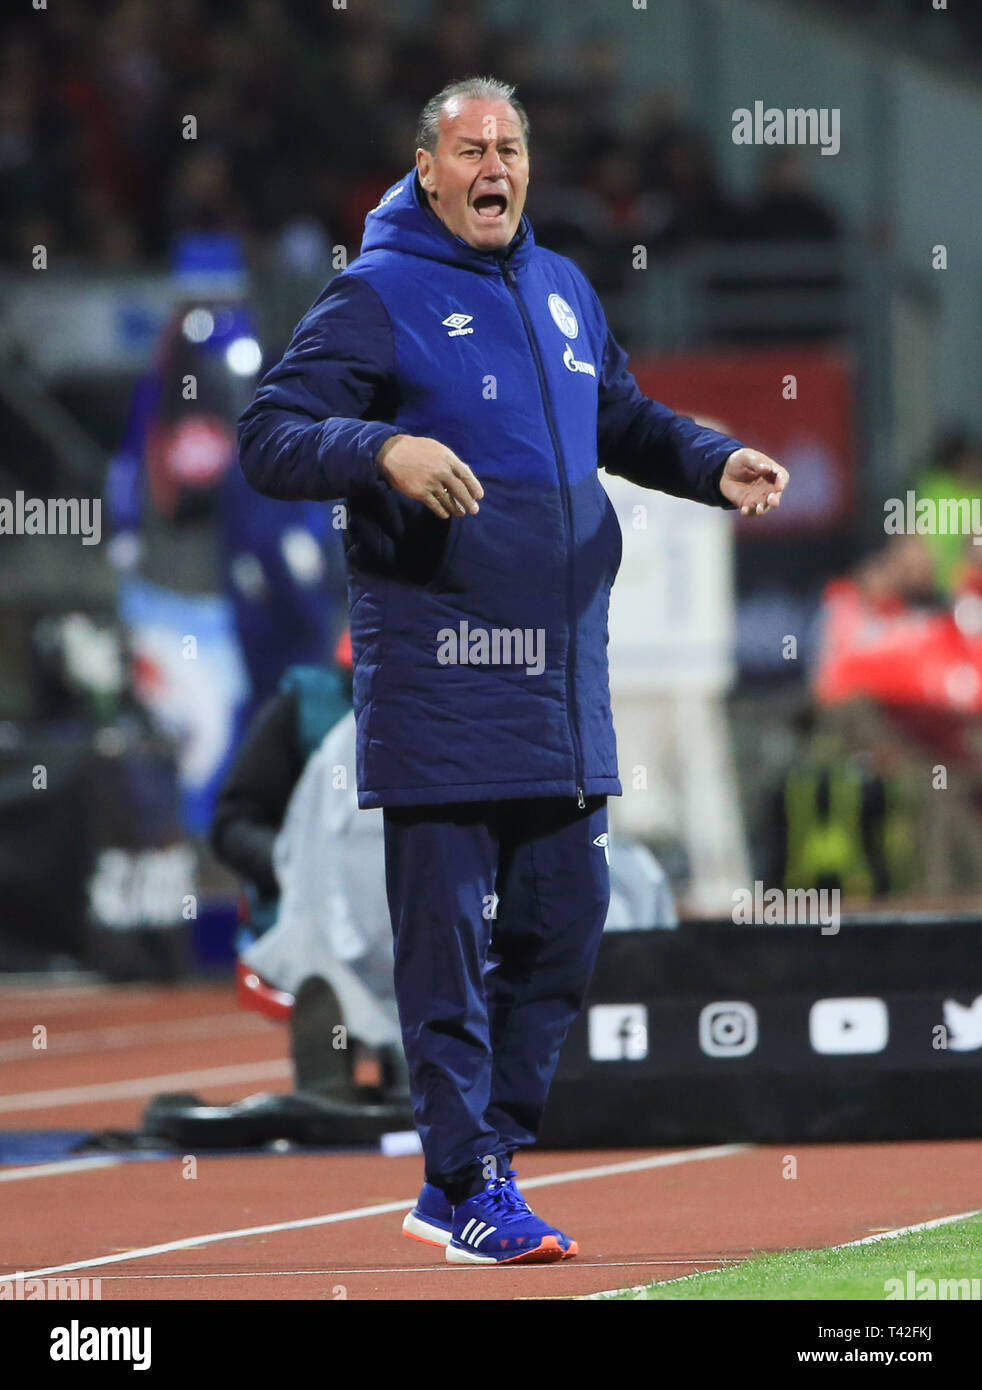 Nuremberg, Germany. 12th Apr, 2019. Schalke 04's head coach Huub Stevens reacts during a German Bundesliga match between 1.FC Nuremberg and FC Schalke 04 in Nuremberg, Germany, April 12, 2019. The match ended in a 1-1 draw. Credit: Philippe Ruiz/Xinhua/Alamy Live News - Stock Image